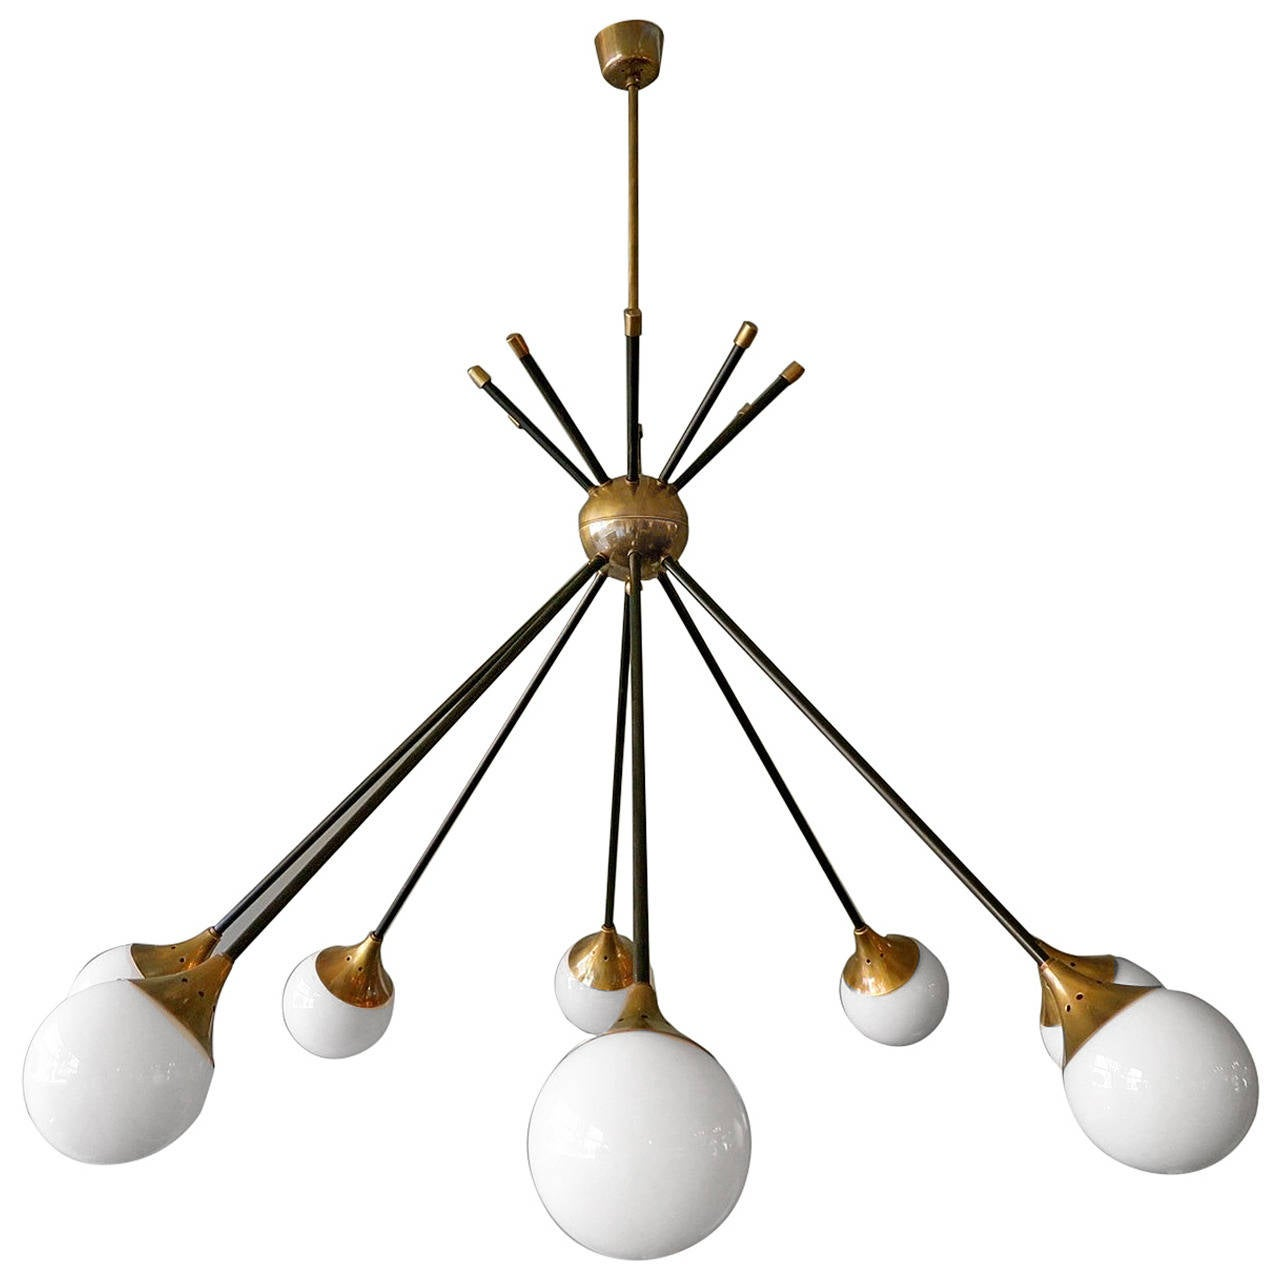 italian stilnovo sputnik chandelier at 1stdibs. Black Bedroom Furniture Sets. Home Design Ideas